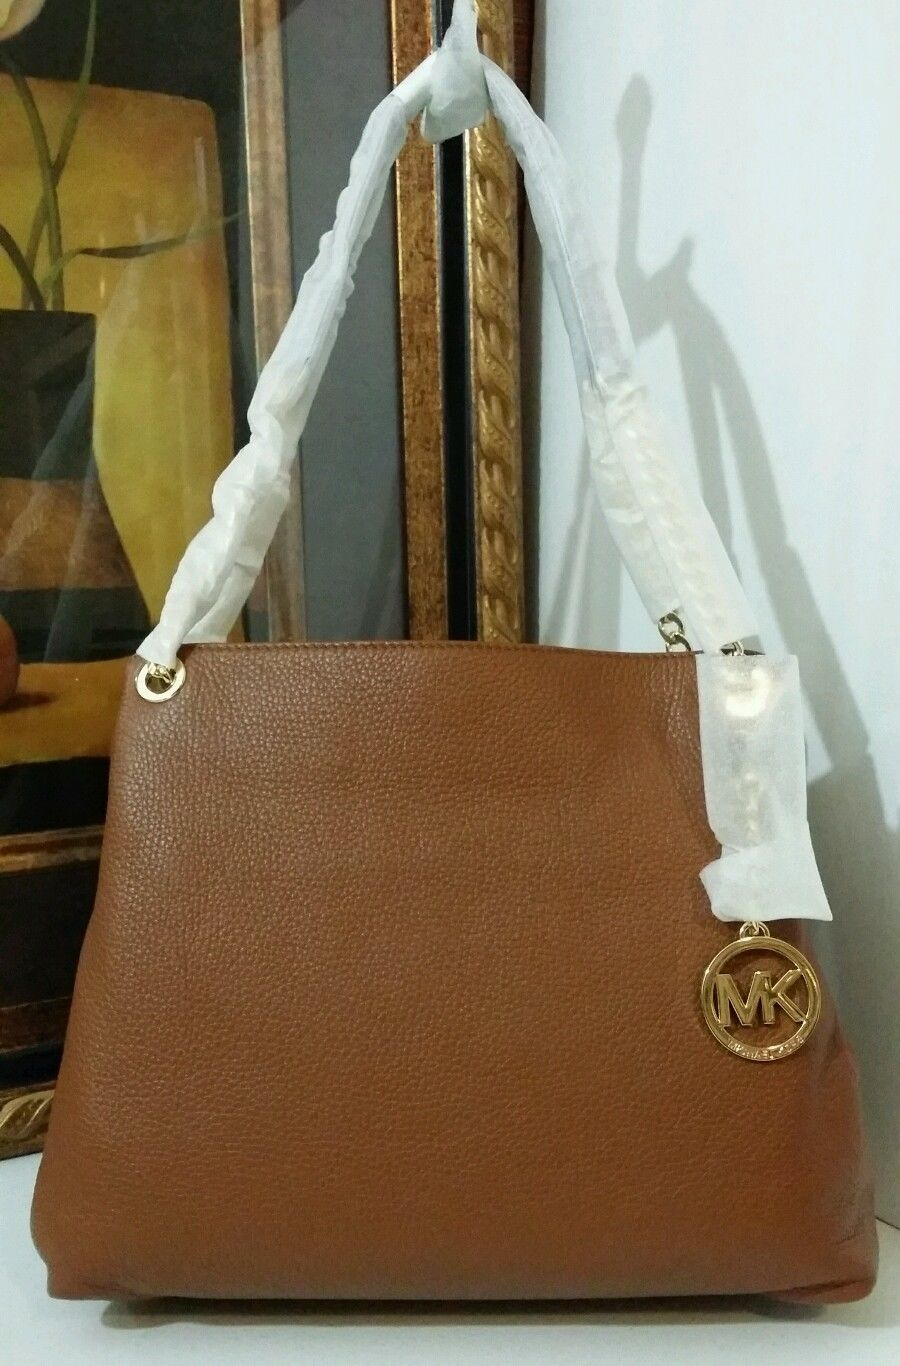 NWT MICHAEL KORS Jet Set Chain Large Leather Shoulder Tote Bag Luggage $298